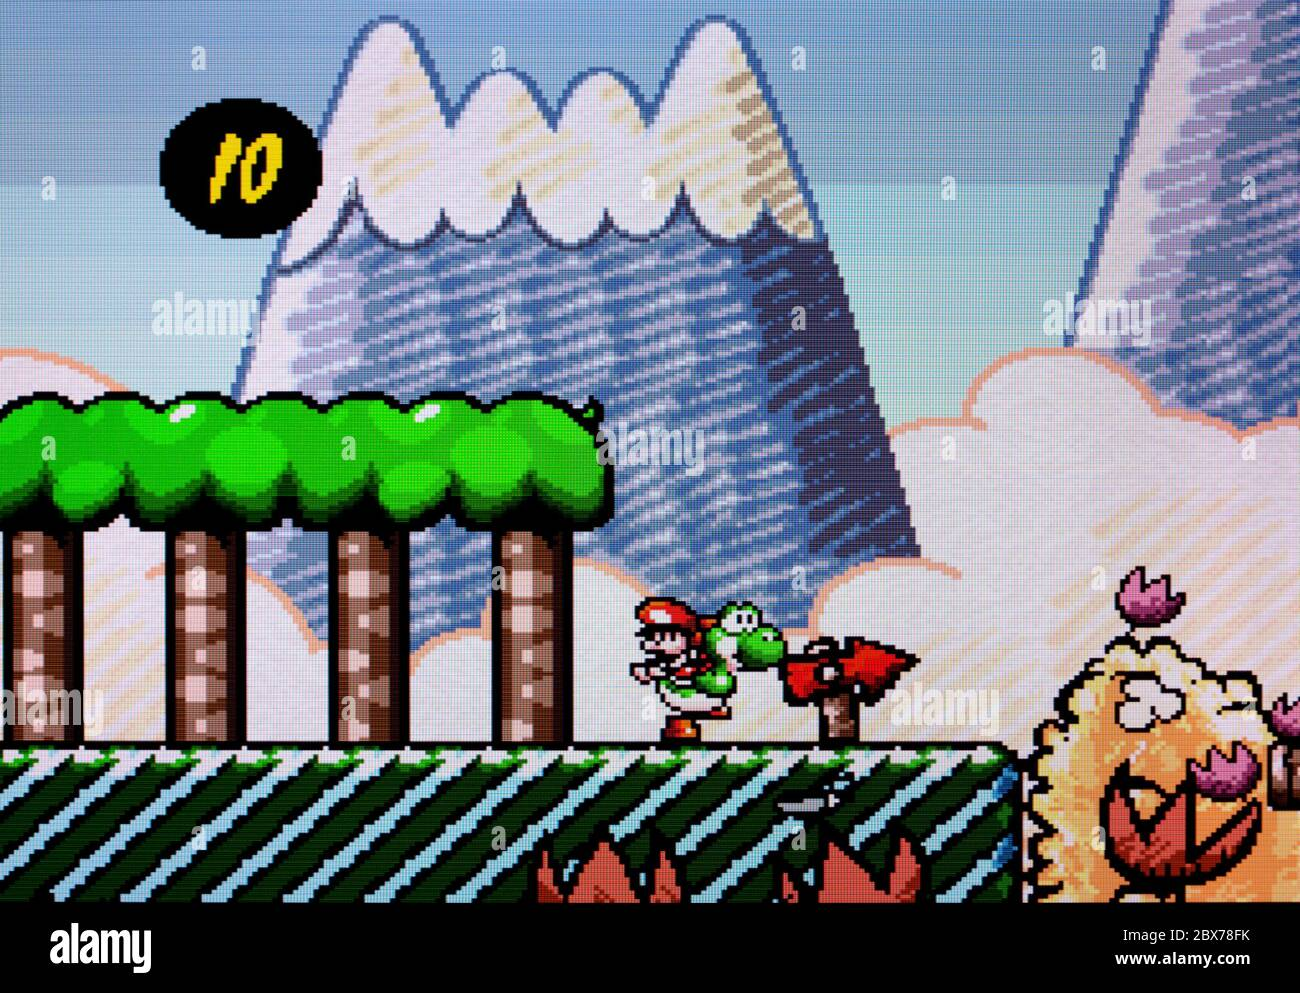 super mario world 2 yoshi s island snes Super Mario World 2 Yoshi's Island - SNES Super Nintendo - Editorial use  only Stock Photo - Alamy